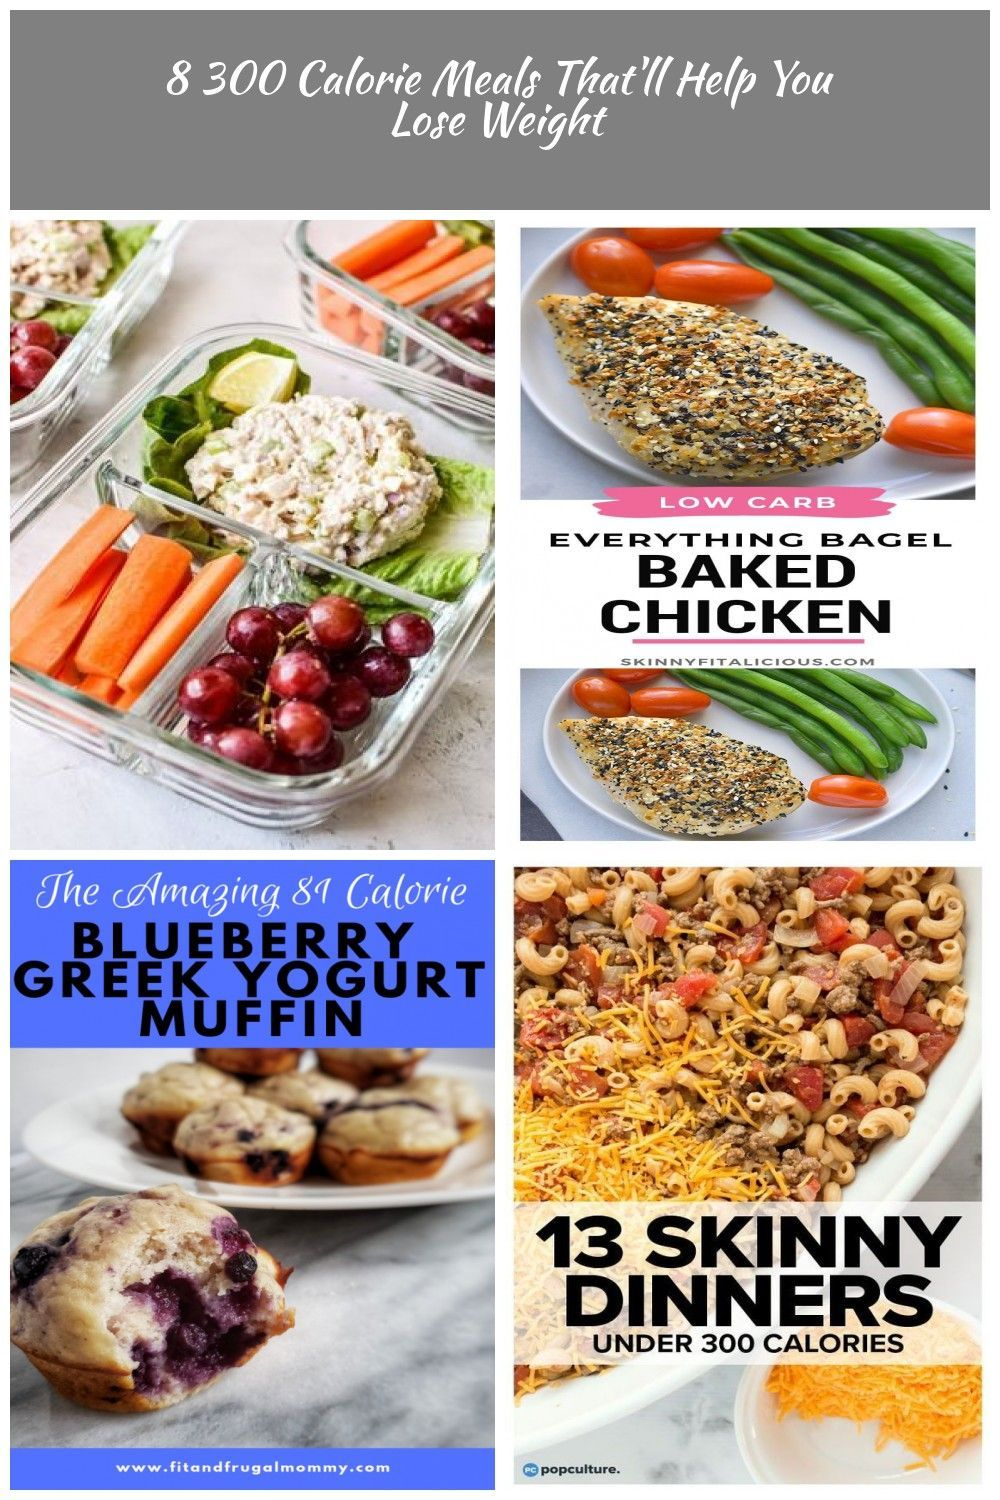 8 300 Calorie Meals That'll Help You Lose Weight - Meraadi low calorie meals 8 300 Calorie Meals That'll Help You Lose Weight #300caloriemeals 8 300 Calorie Meals That'll Help You Lose Weight - Meraadi low calorie meals 8 300 Calorie Meals That'll Help You Lose Weight #300caloriemeals